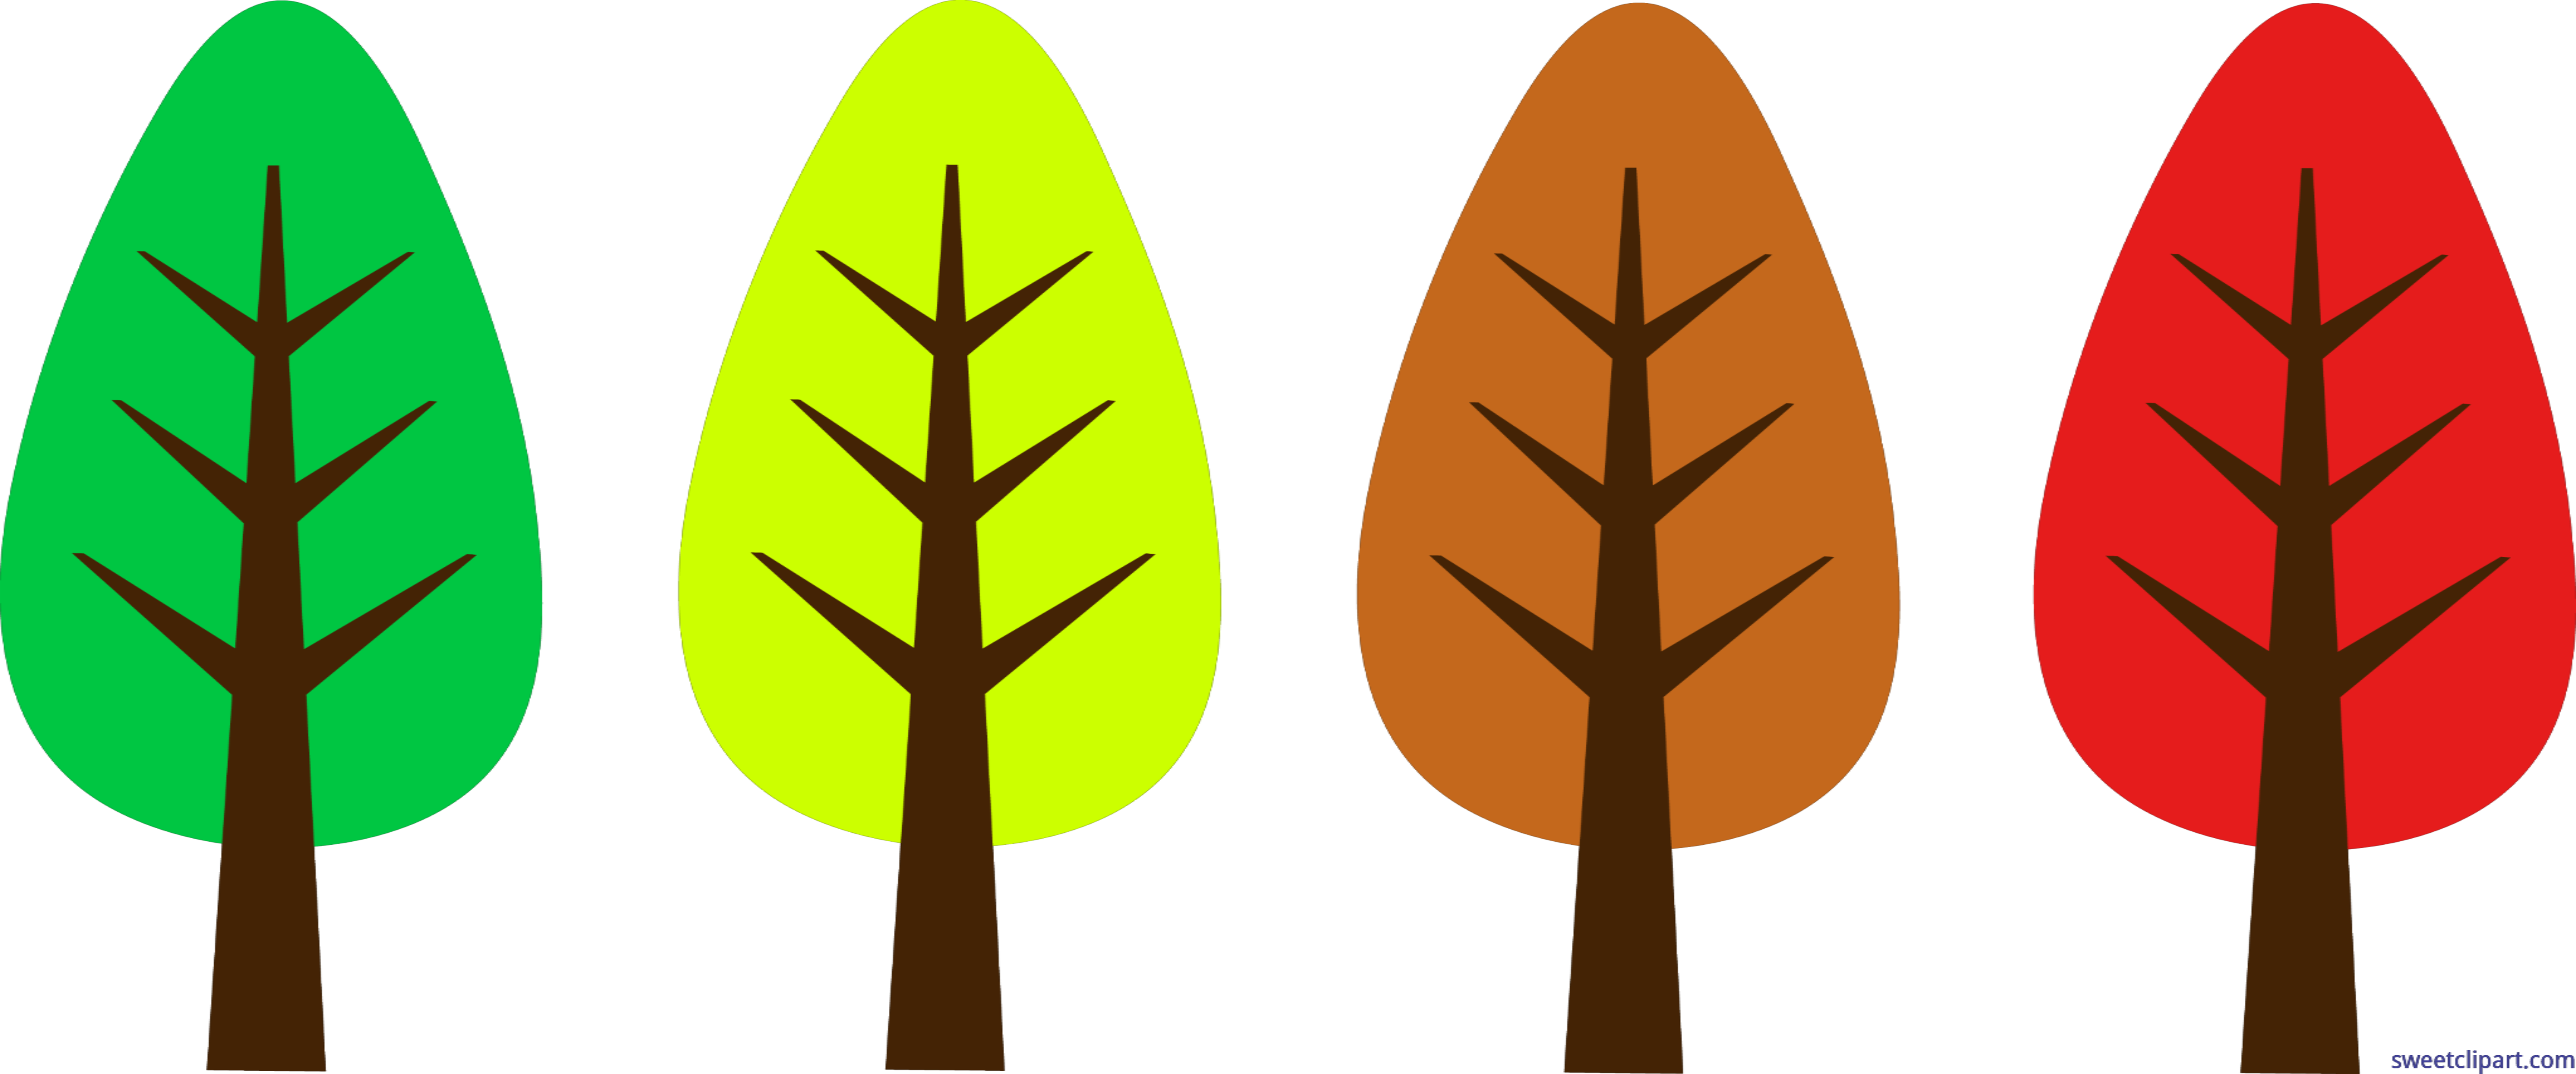 Scenes at getdrawings com. Nature clipart tree image free download